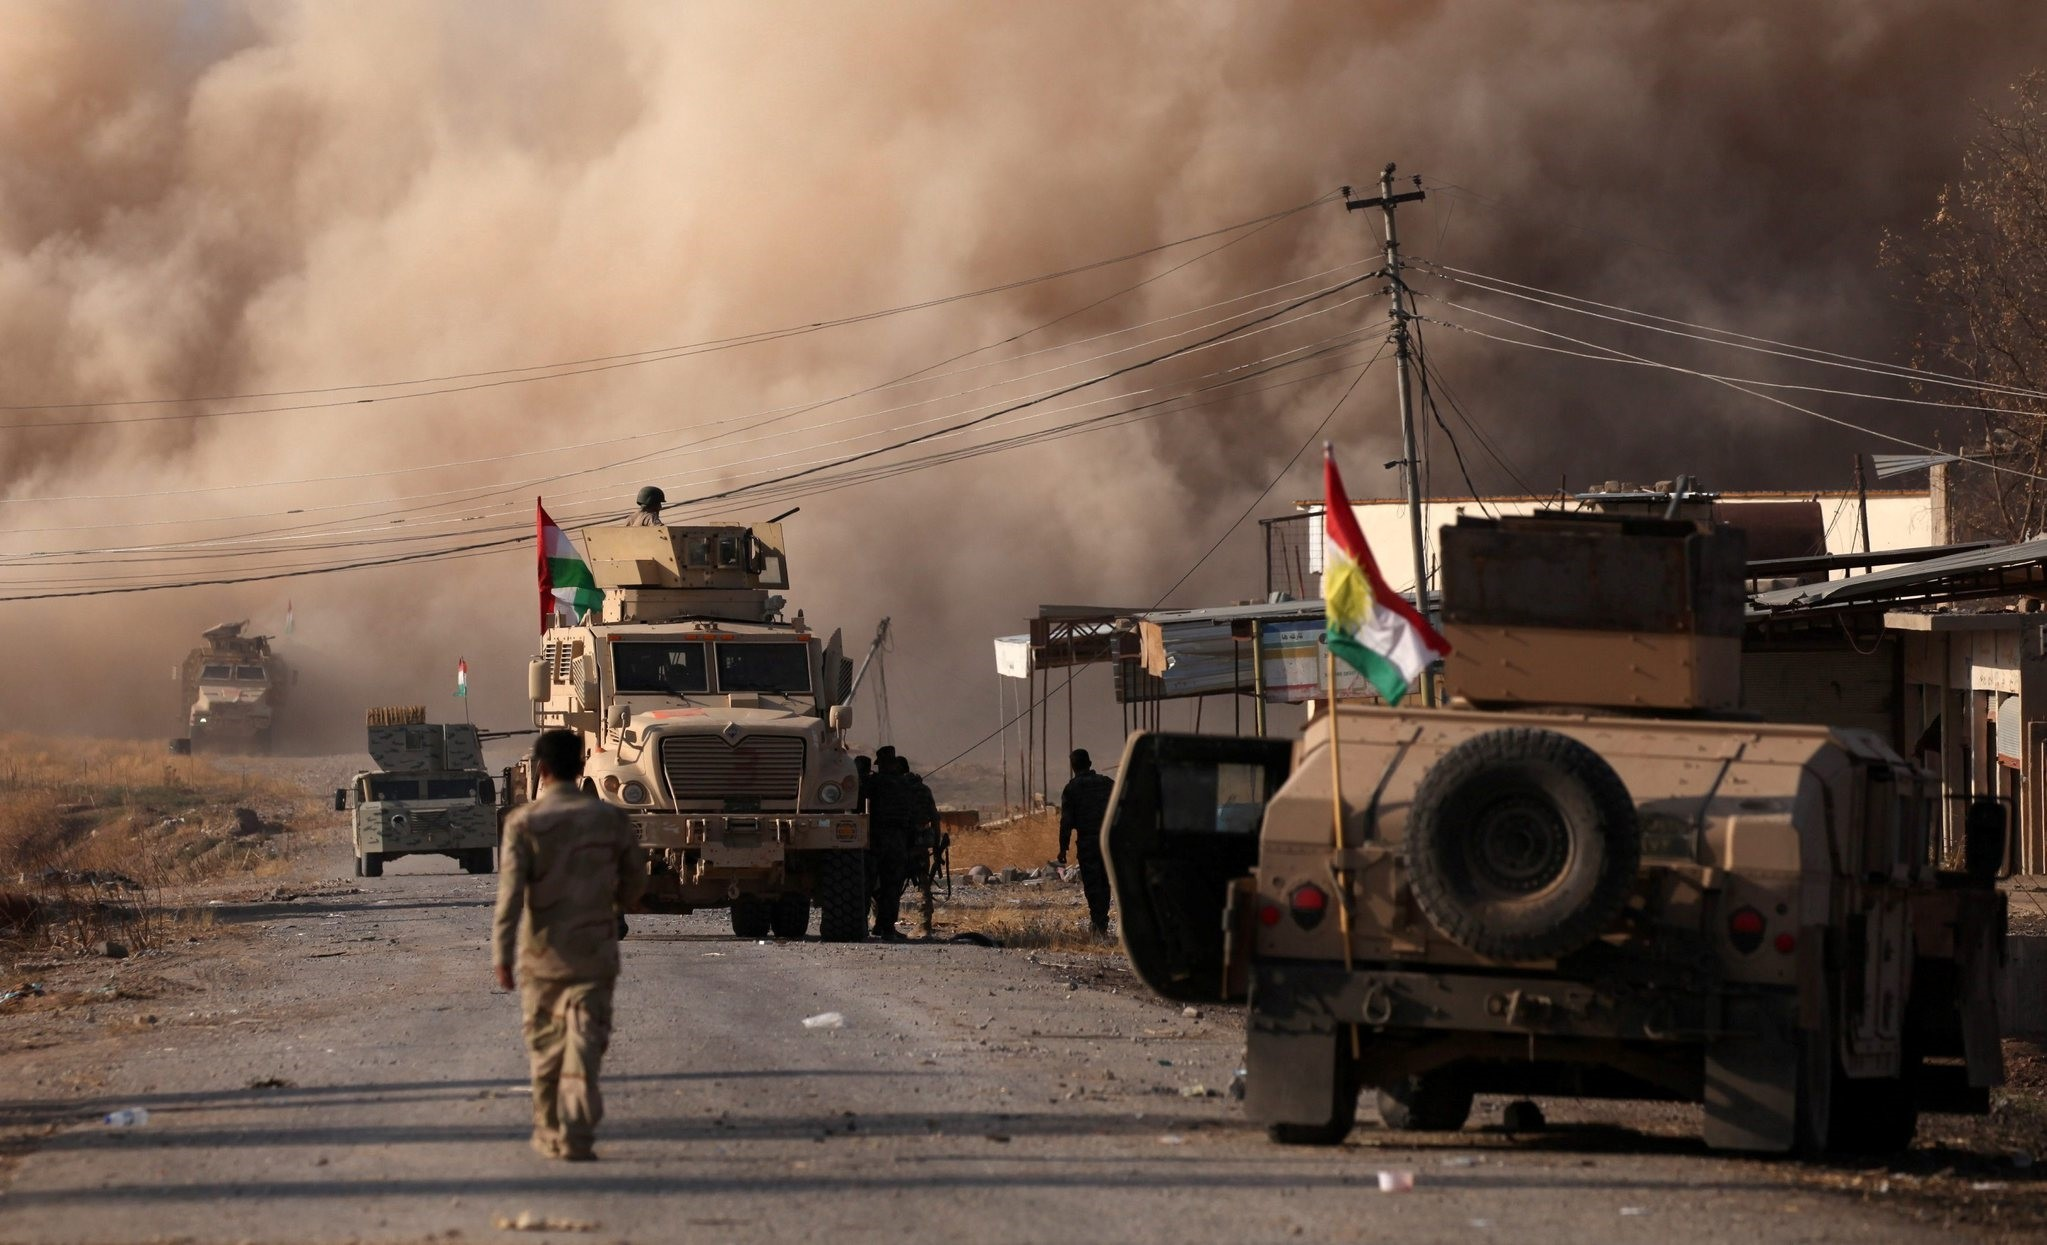 Smoke rises during clashes between Peshmerga forces and Daesh in the town of Bashiqa, east of Mosul, during an operation to attack Daesh militants in Mosul, November 7, 2016. (REUTERS Photo)